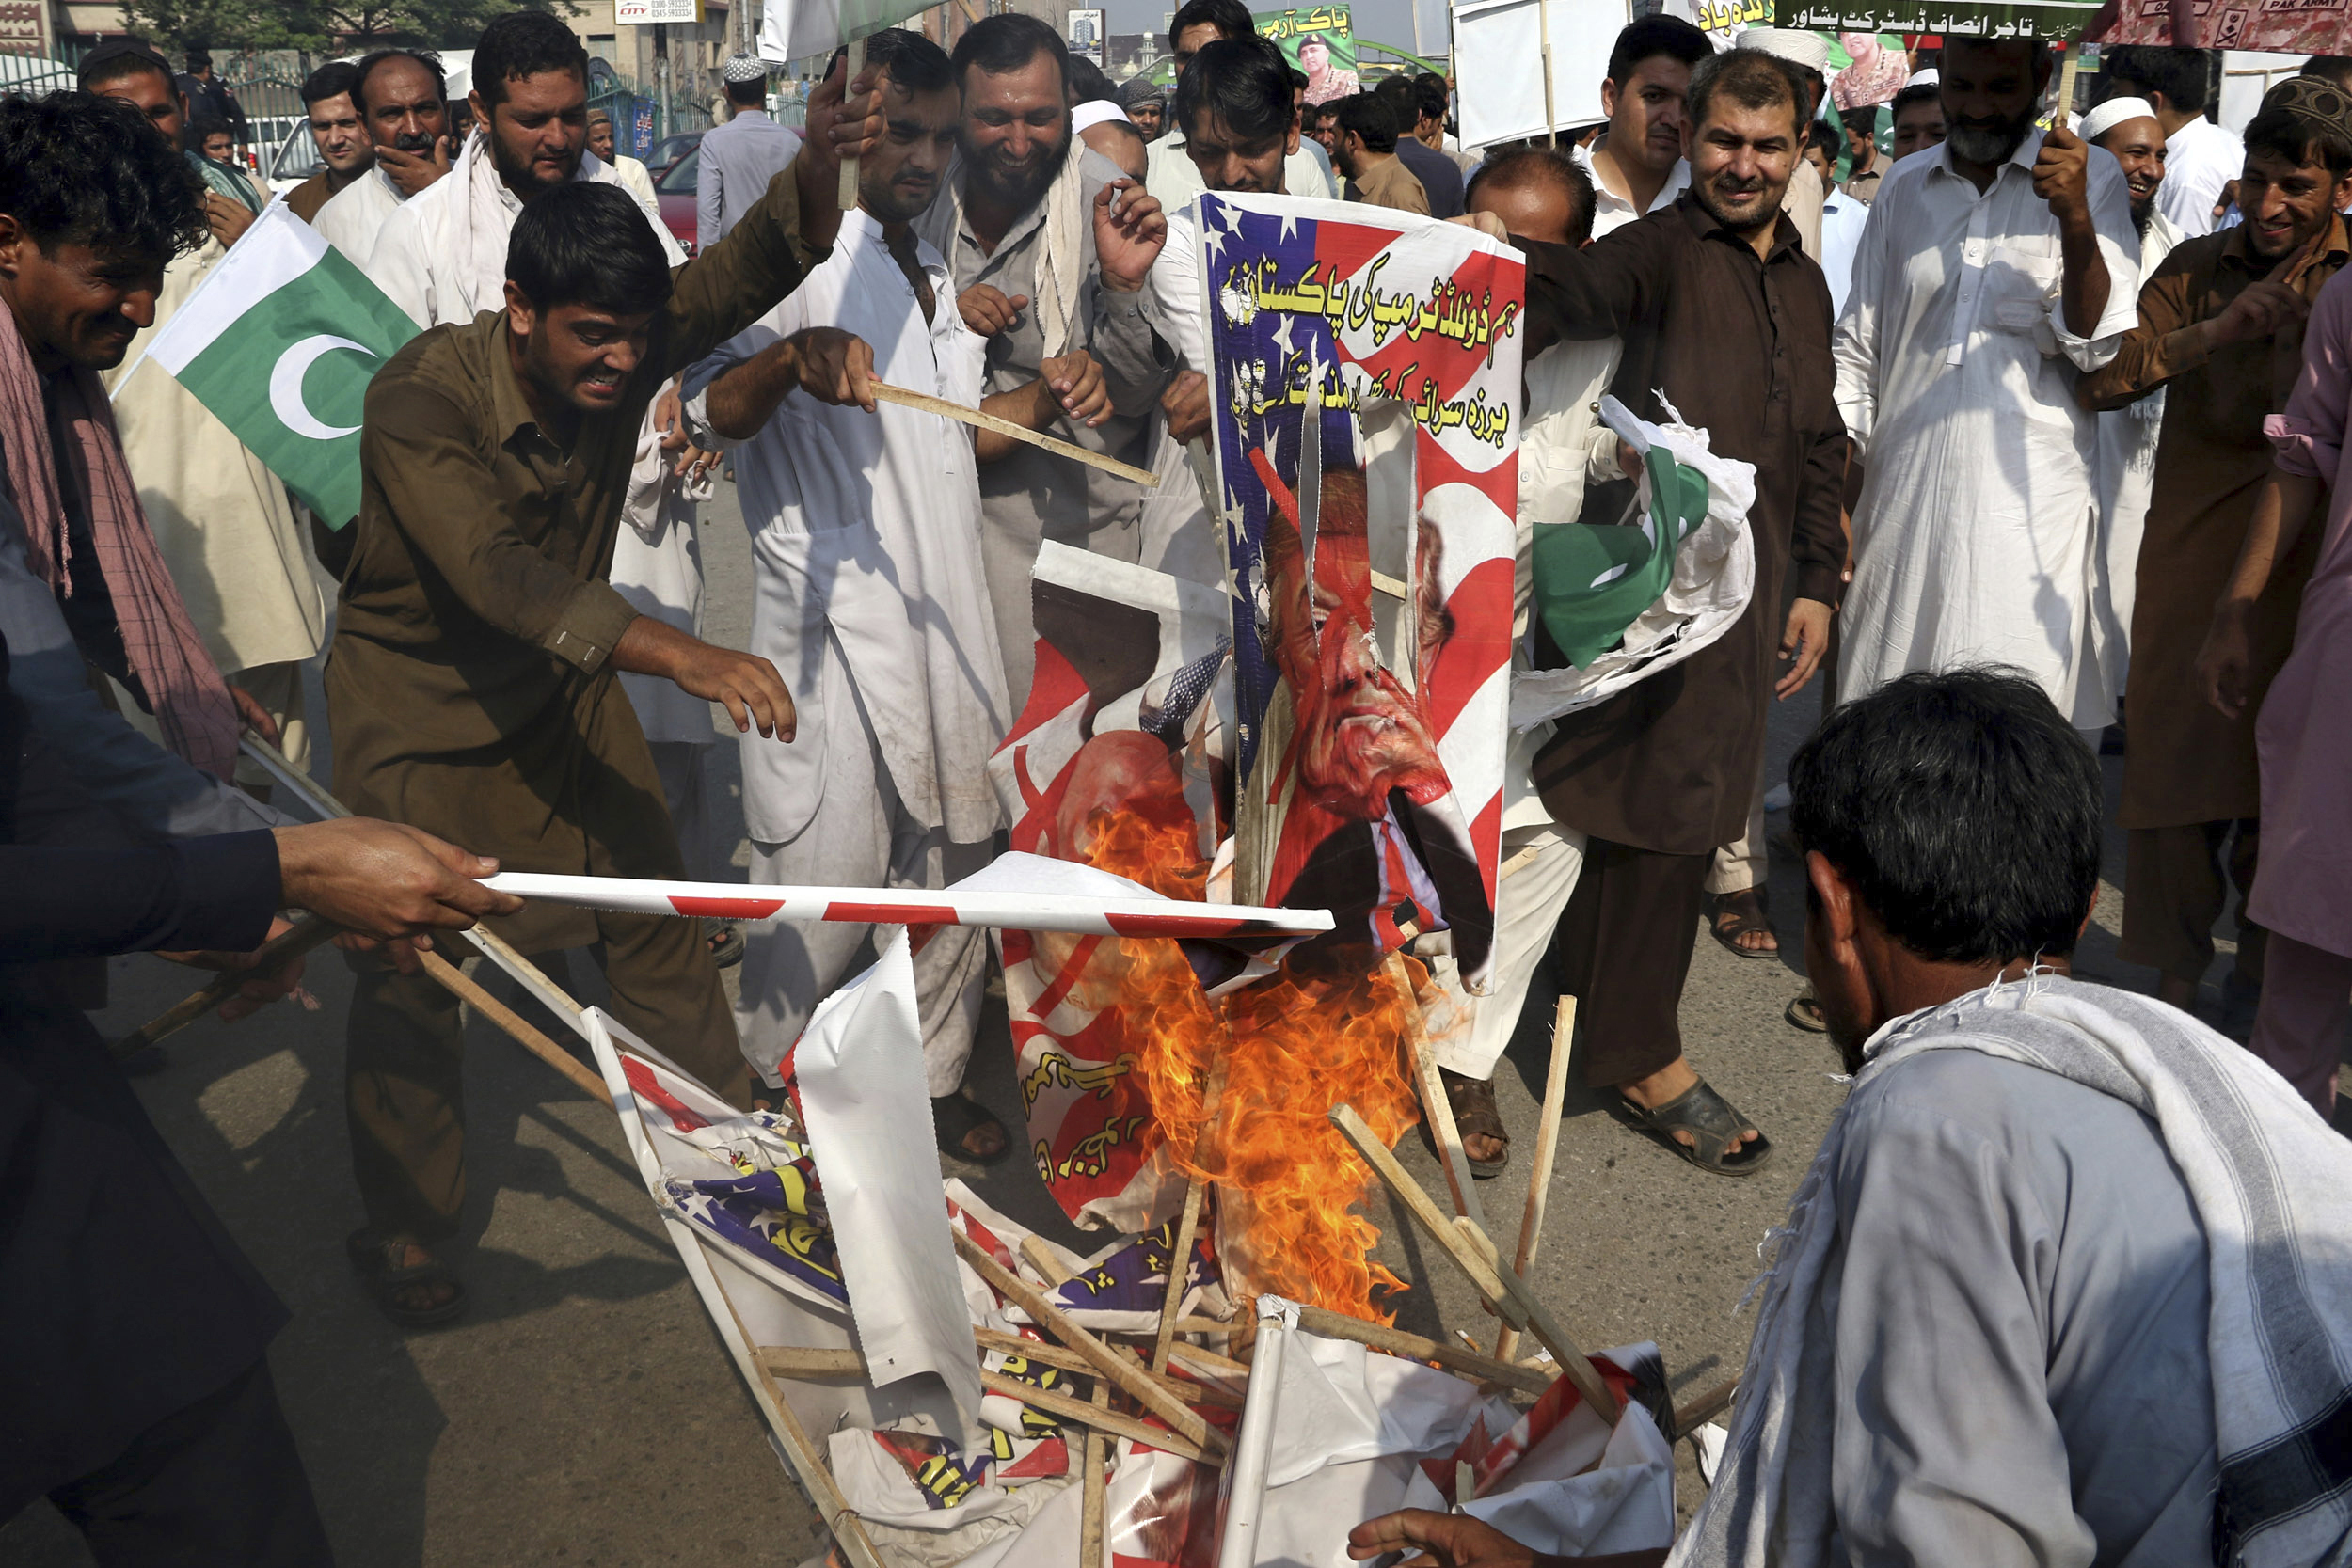 Pakistani protesters burn posters of U. S. President Donald Trump in Peshawar, Pakistan, Aug. 30, 2017. Protesters have objected to Trump's allegation that Islamabad is harboring militants who battle U.S. forces in Afghanistan.